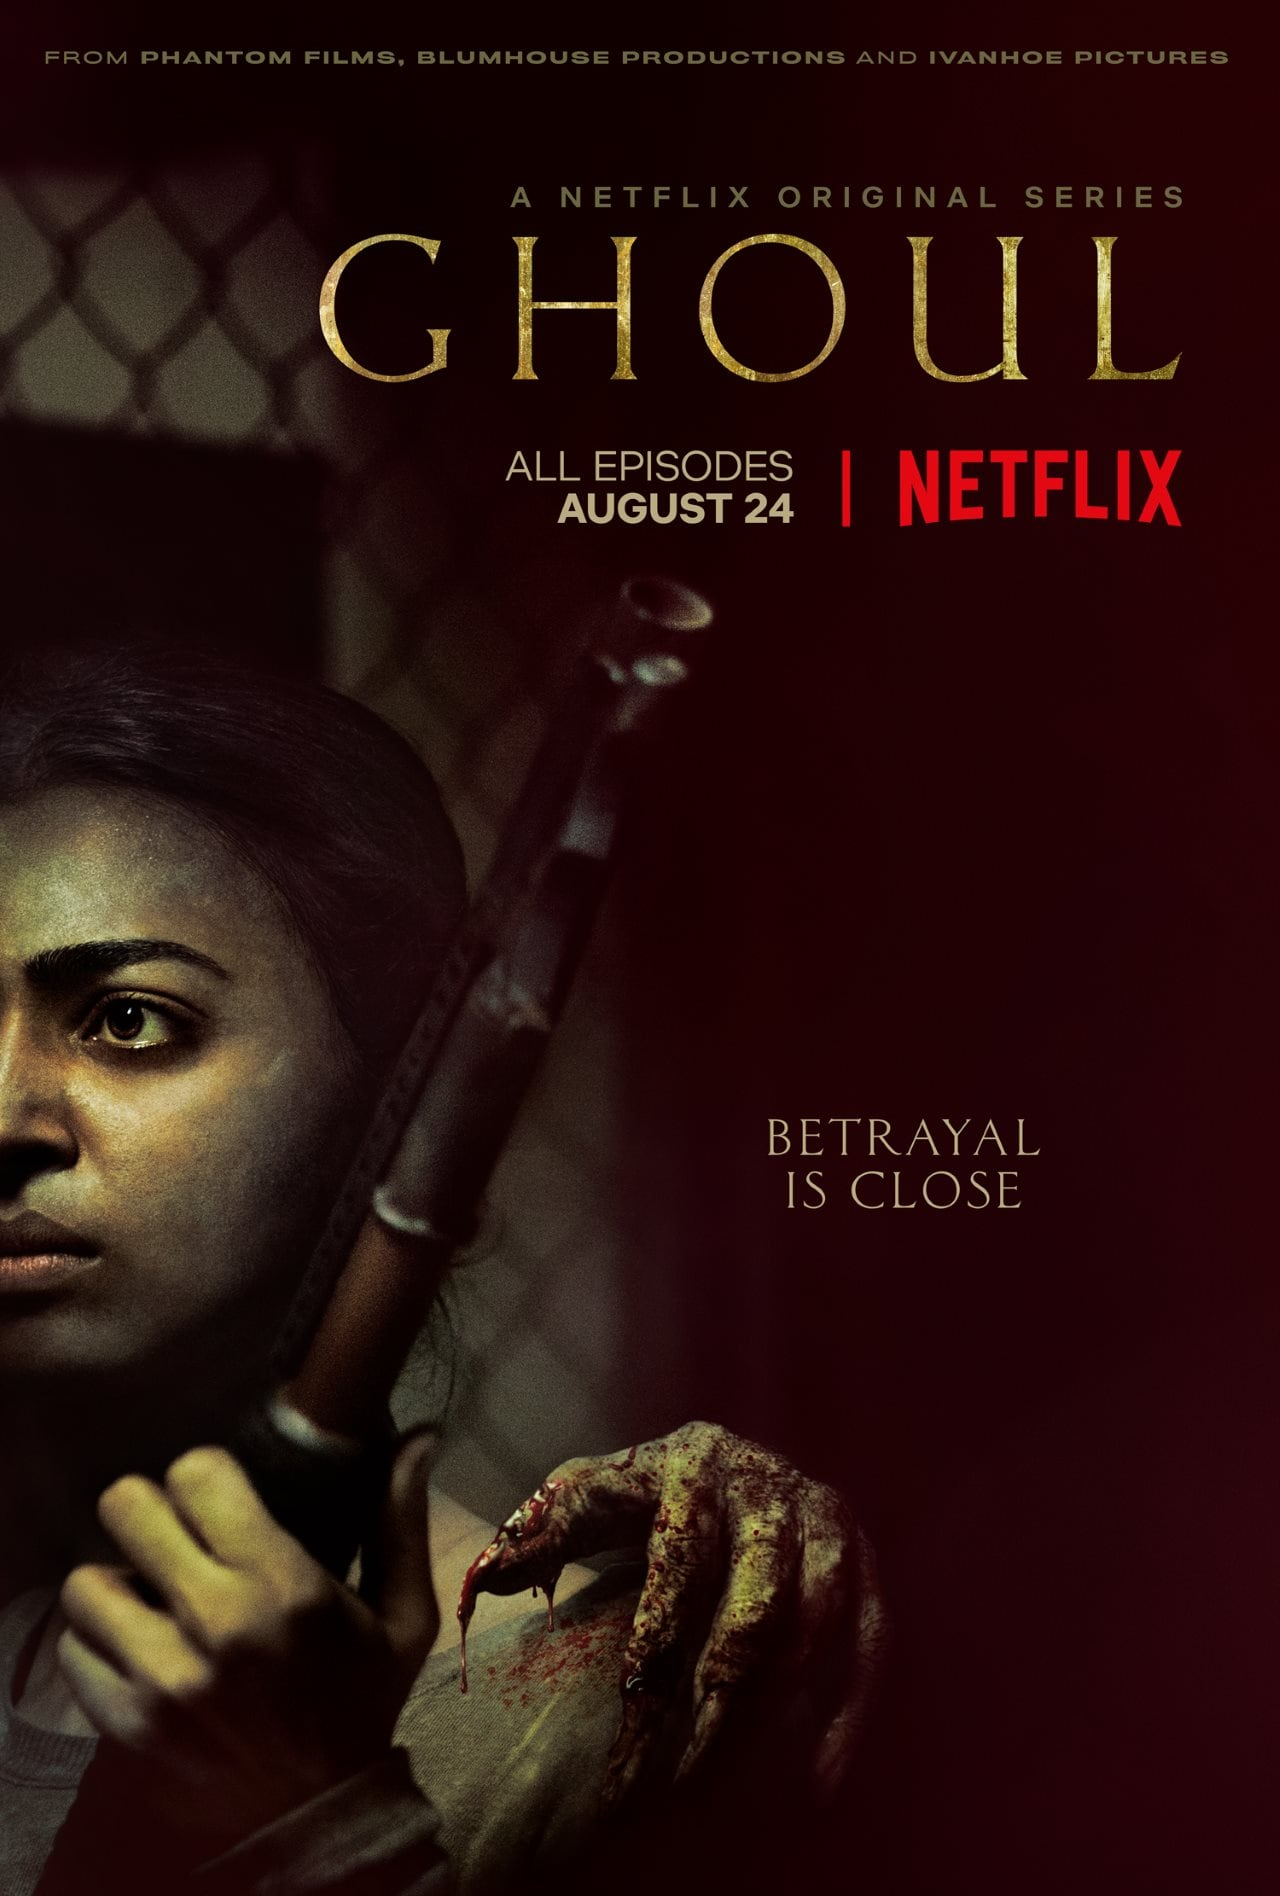 Netflix Sets Release Date for Ghoul, the Next Original